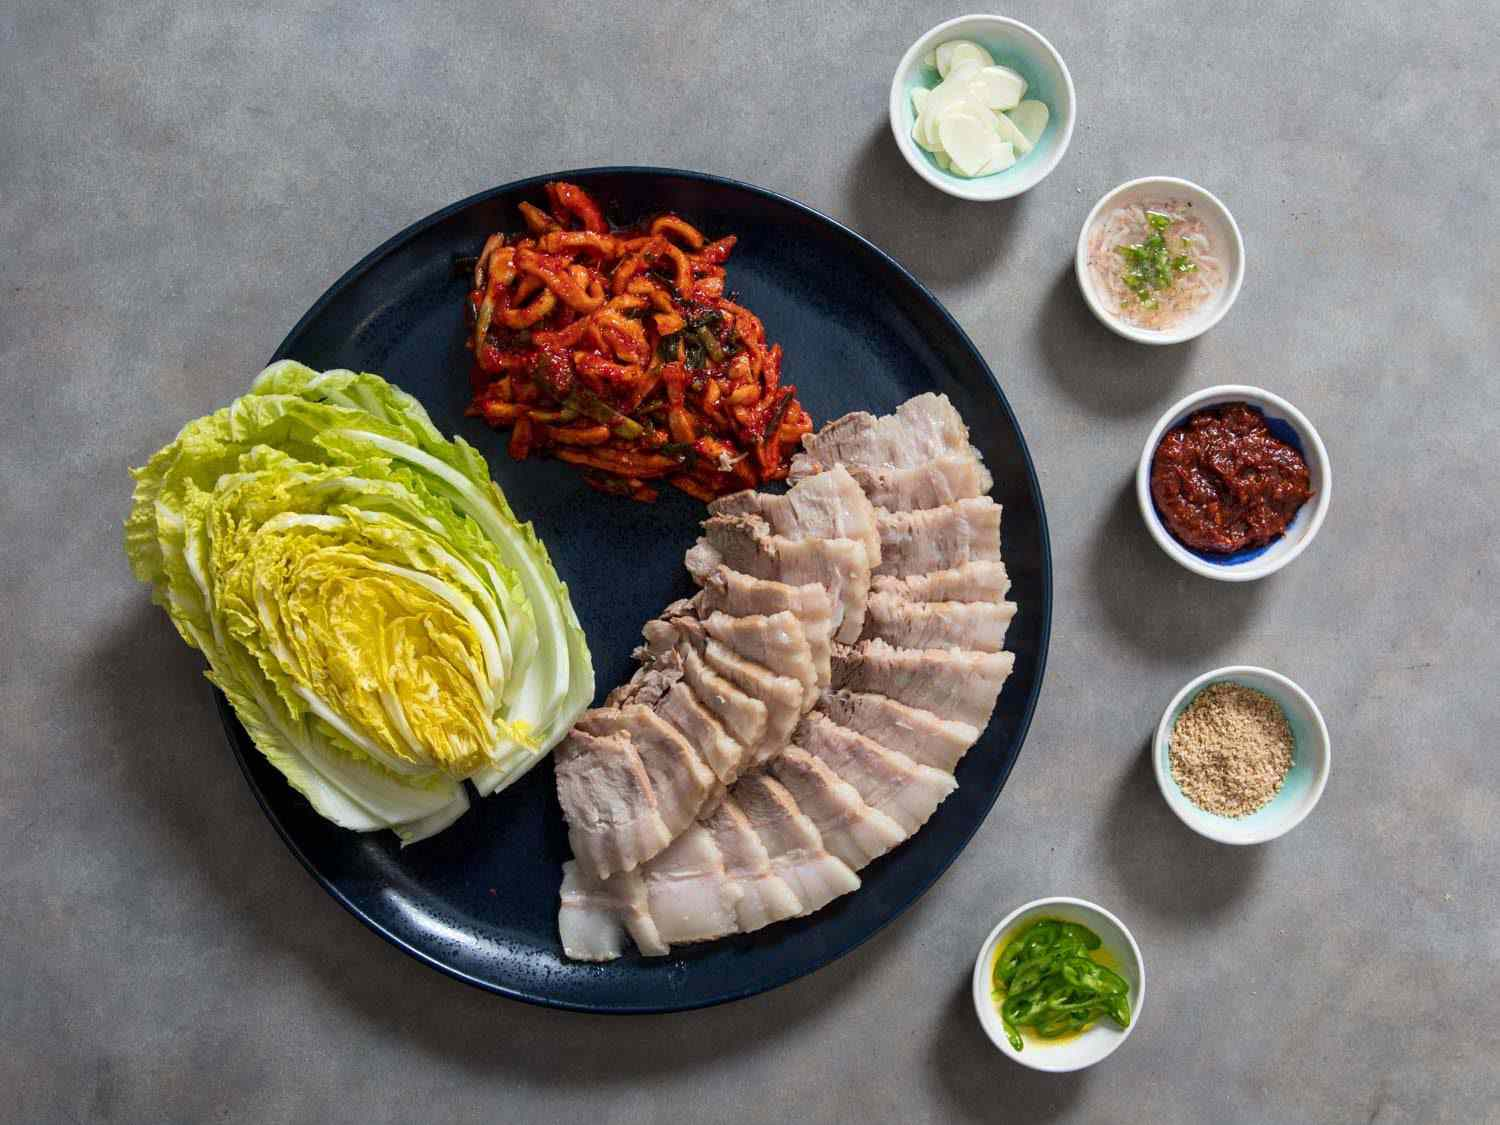 A Korean bossam feast with all the condiments, sauces, and flavorings